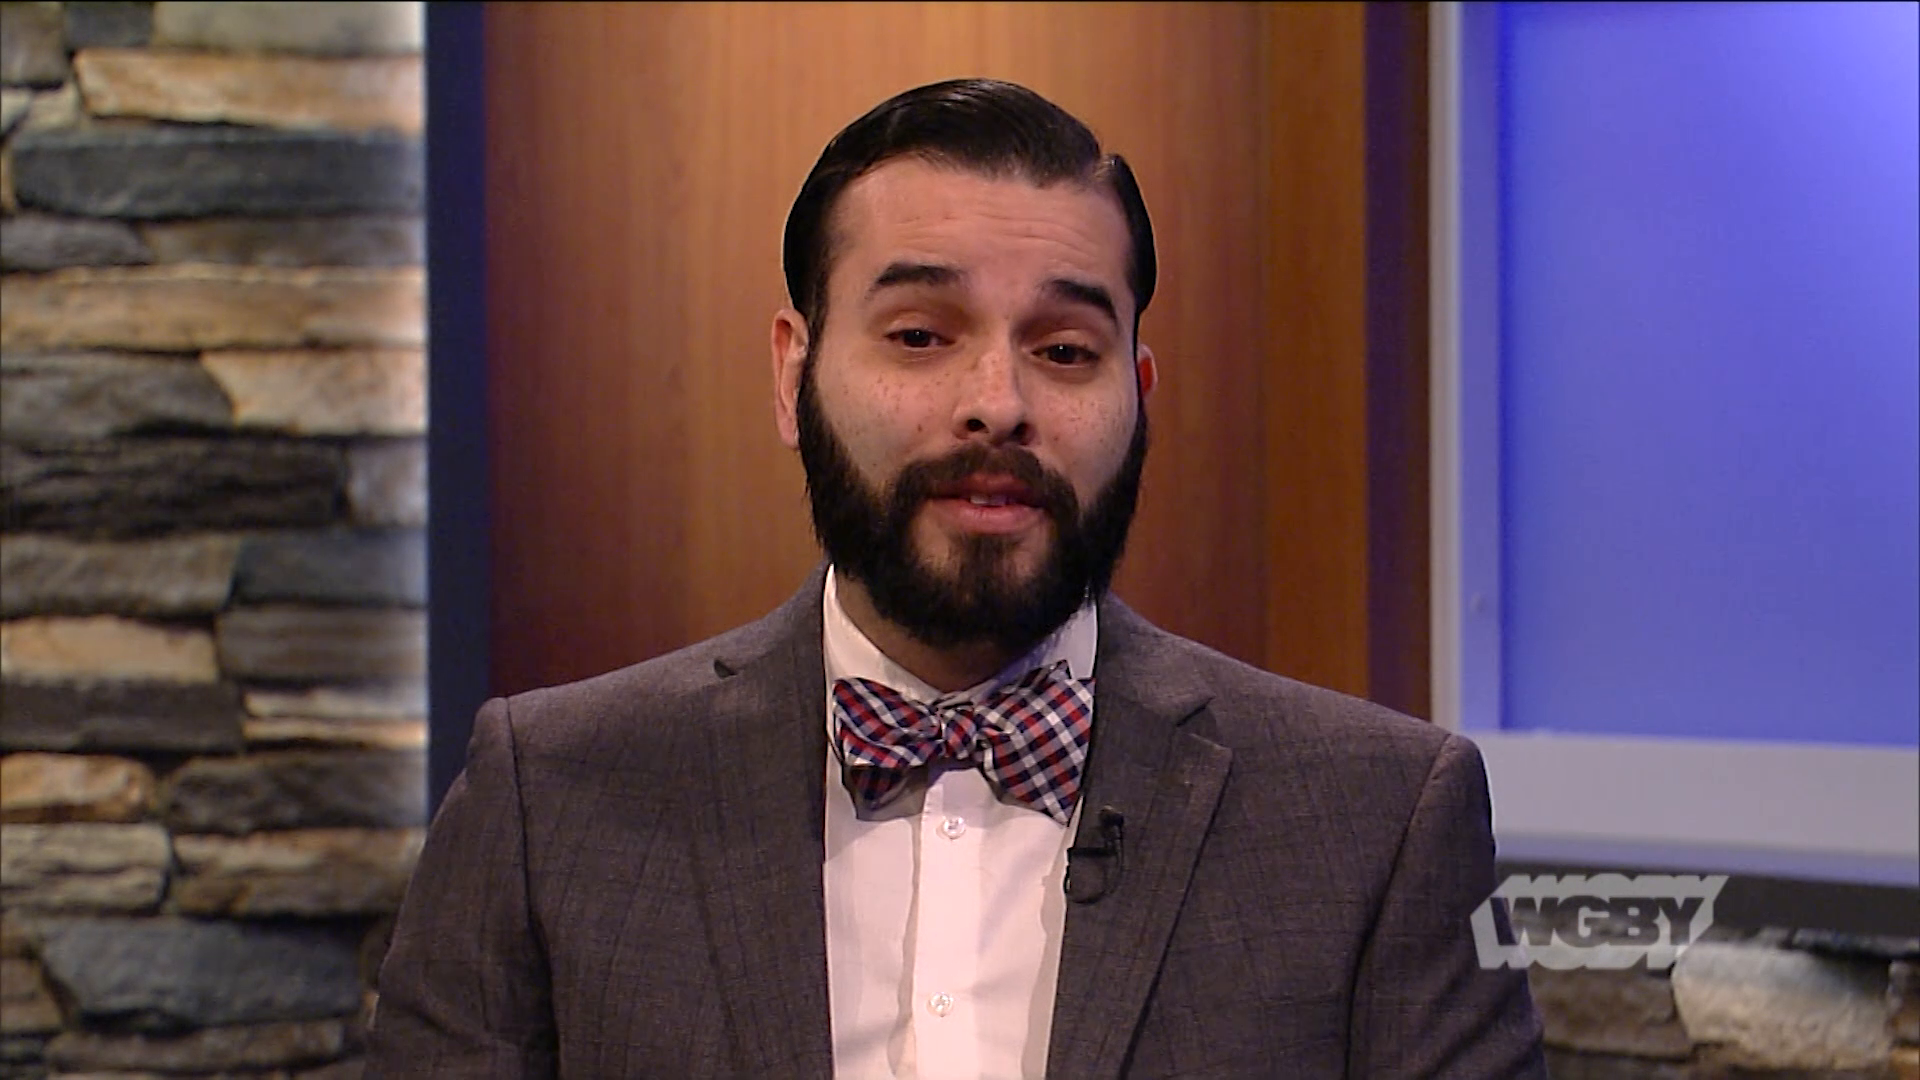 Baystate Medical Center's Dr. Esteban Dipilar-Morales offers tips for protecting yourself and your family during cold and flu season.